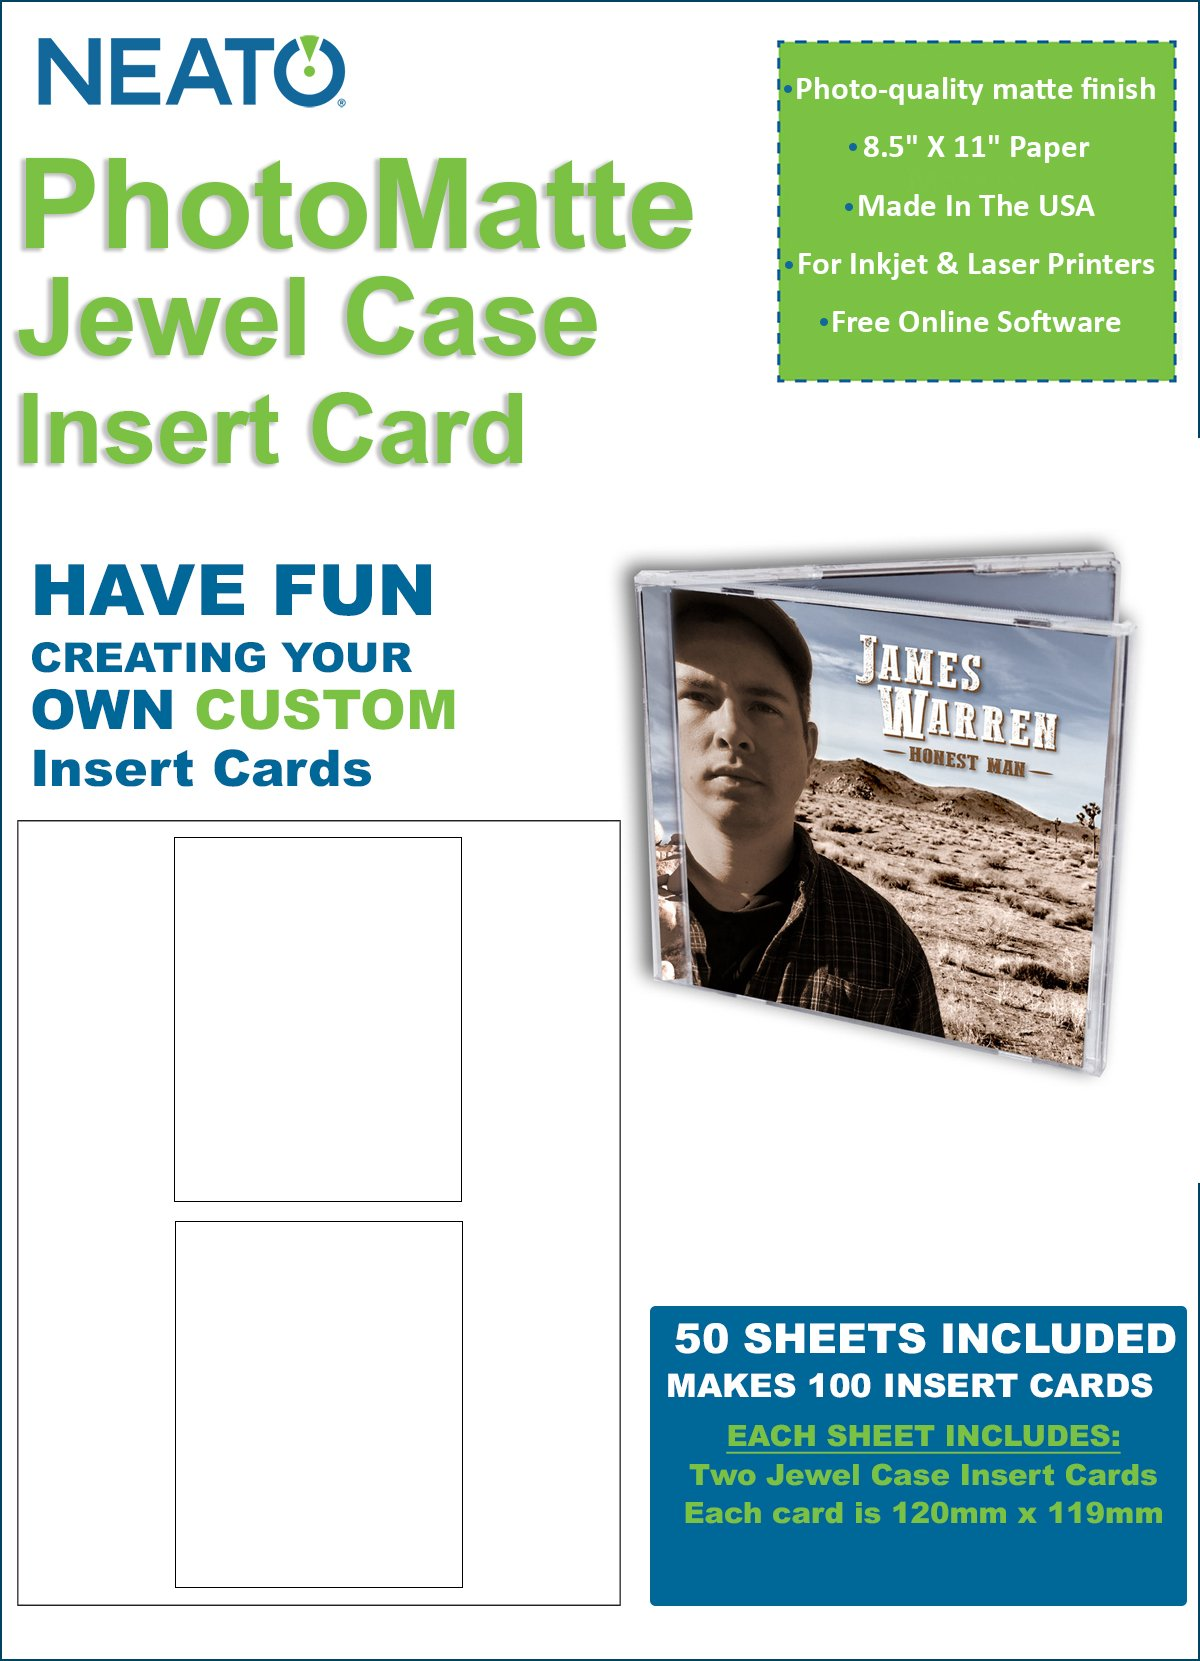 Neato PhotoMatte Jewel Case Insert Card – 50 Sheets – Makes 100 Insert Cards Total